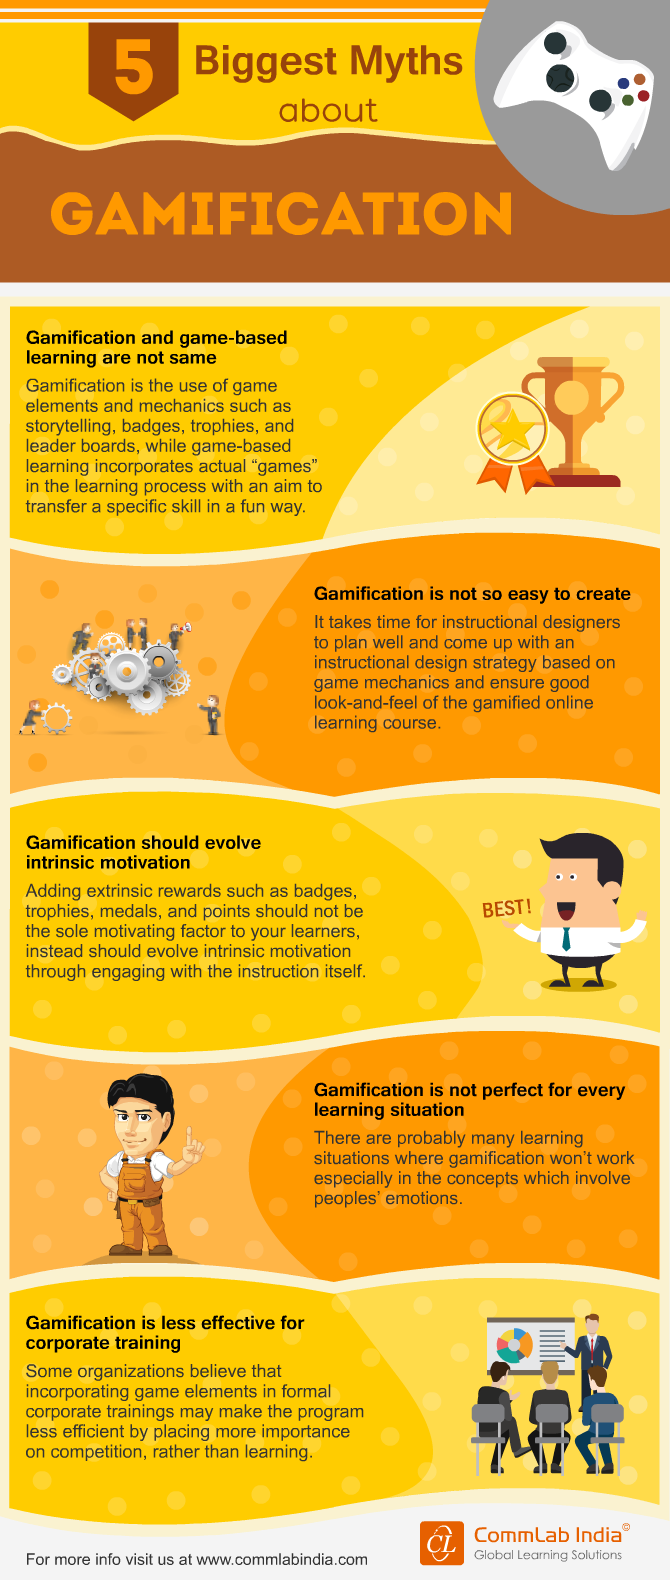 5 Biggest Myths about Gamification [Infographic]